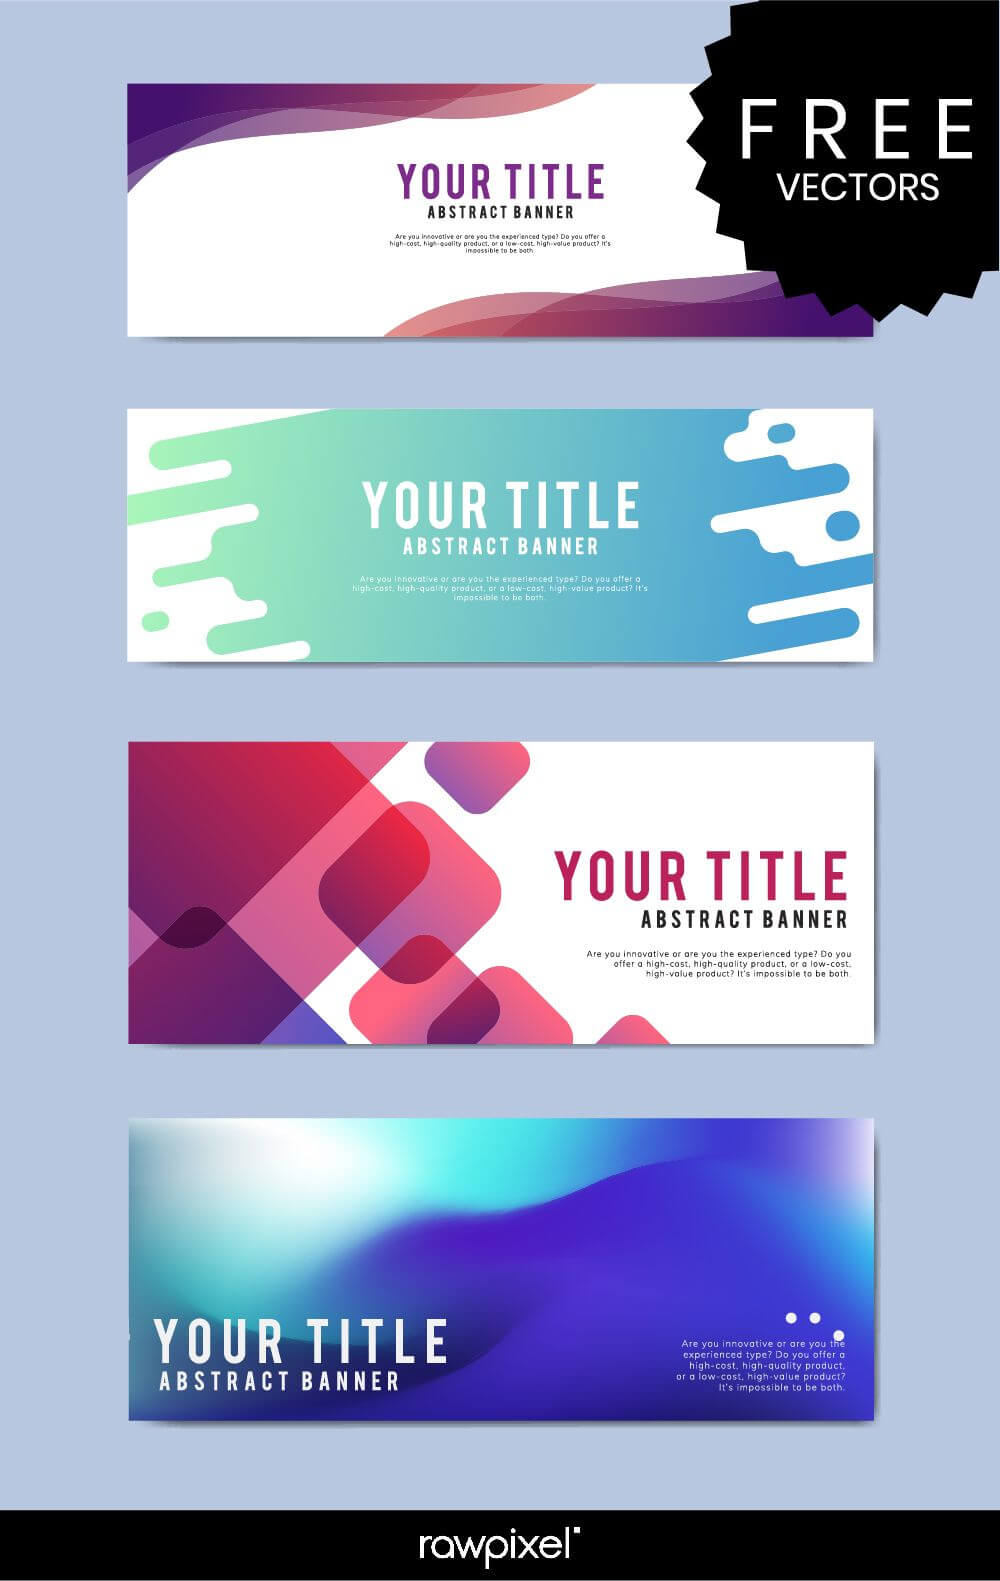 Download Free Modern Business Banner Templates At Rawpixel within Website Banner Templates Free Download